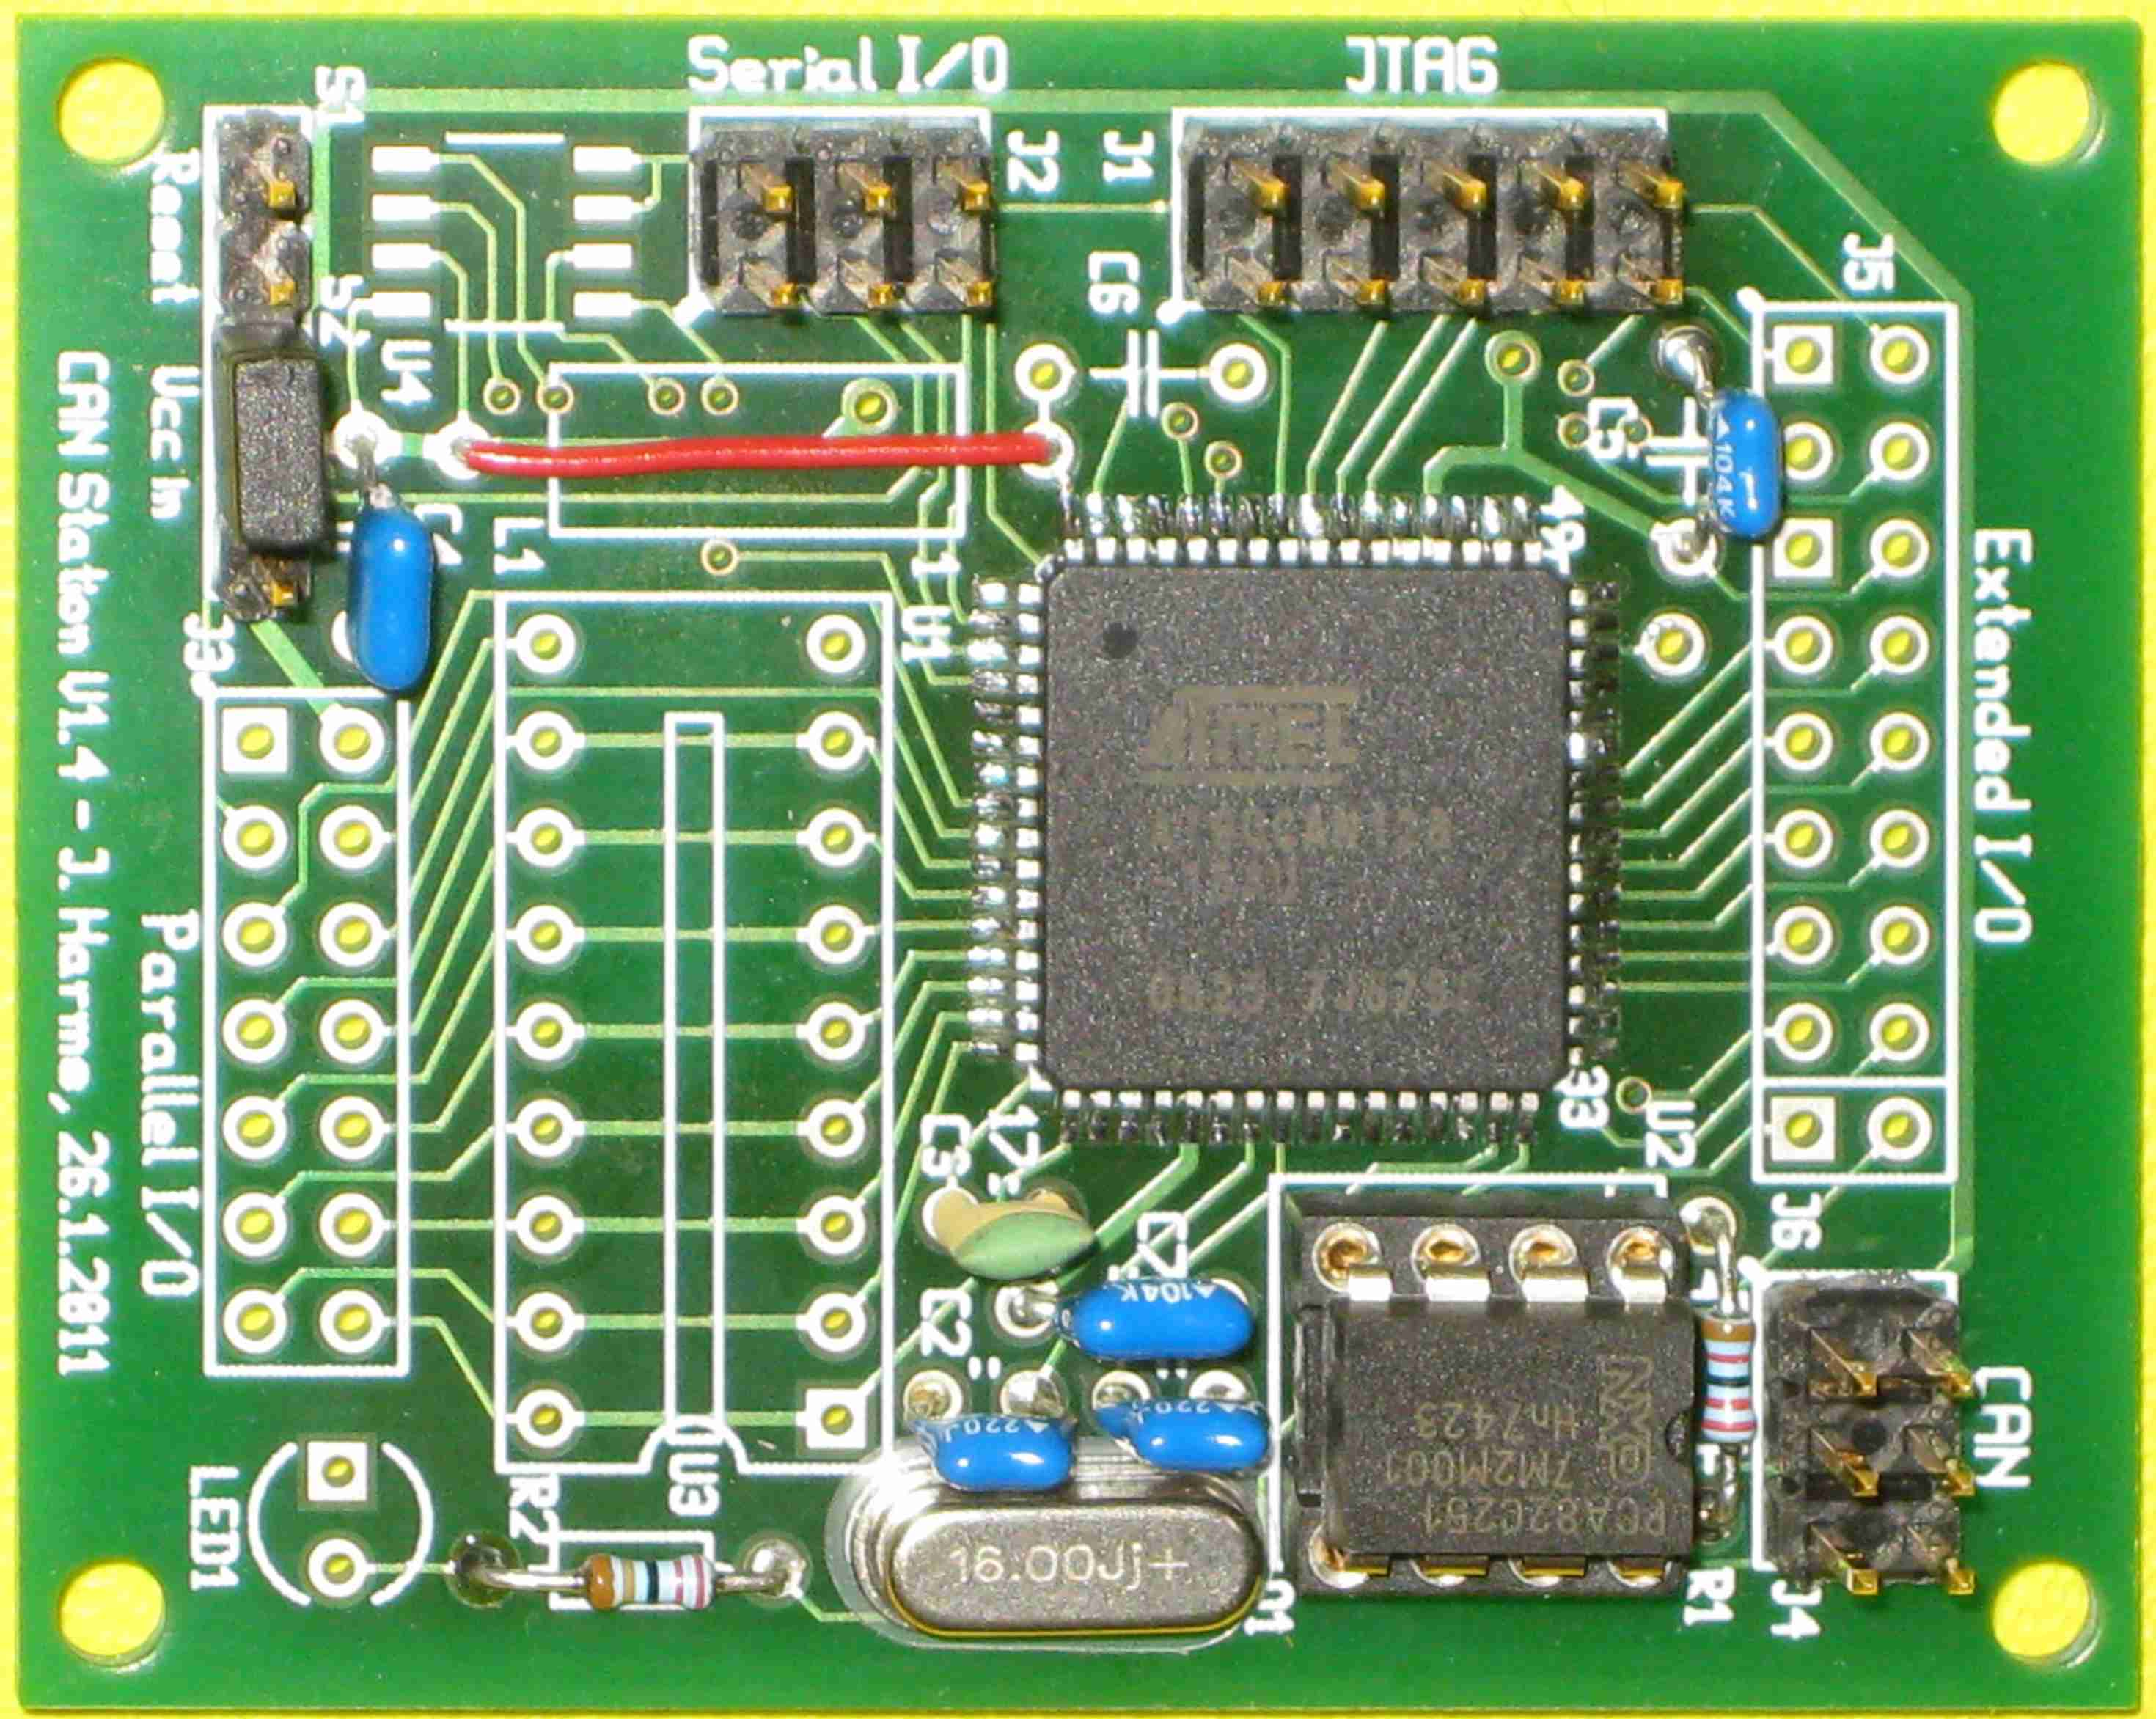 Housebus High Res Jpeg Of A Circuit Board With Binary Codes As The Background Figure 231 1 Canstation Printed